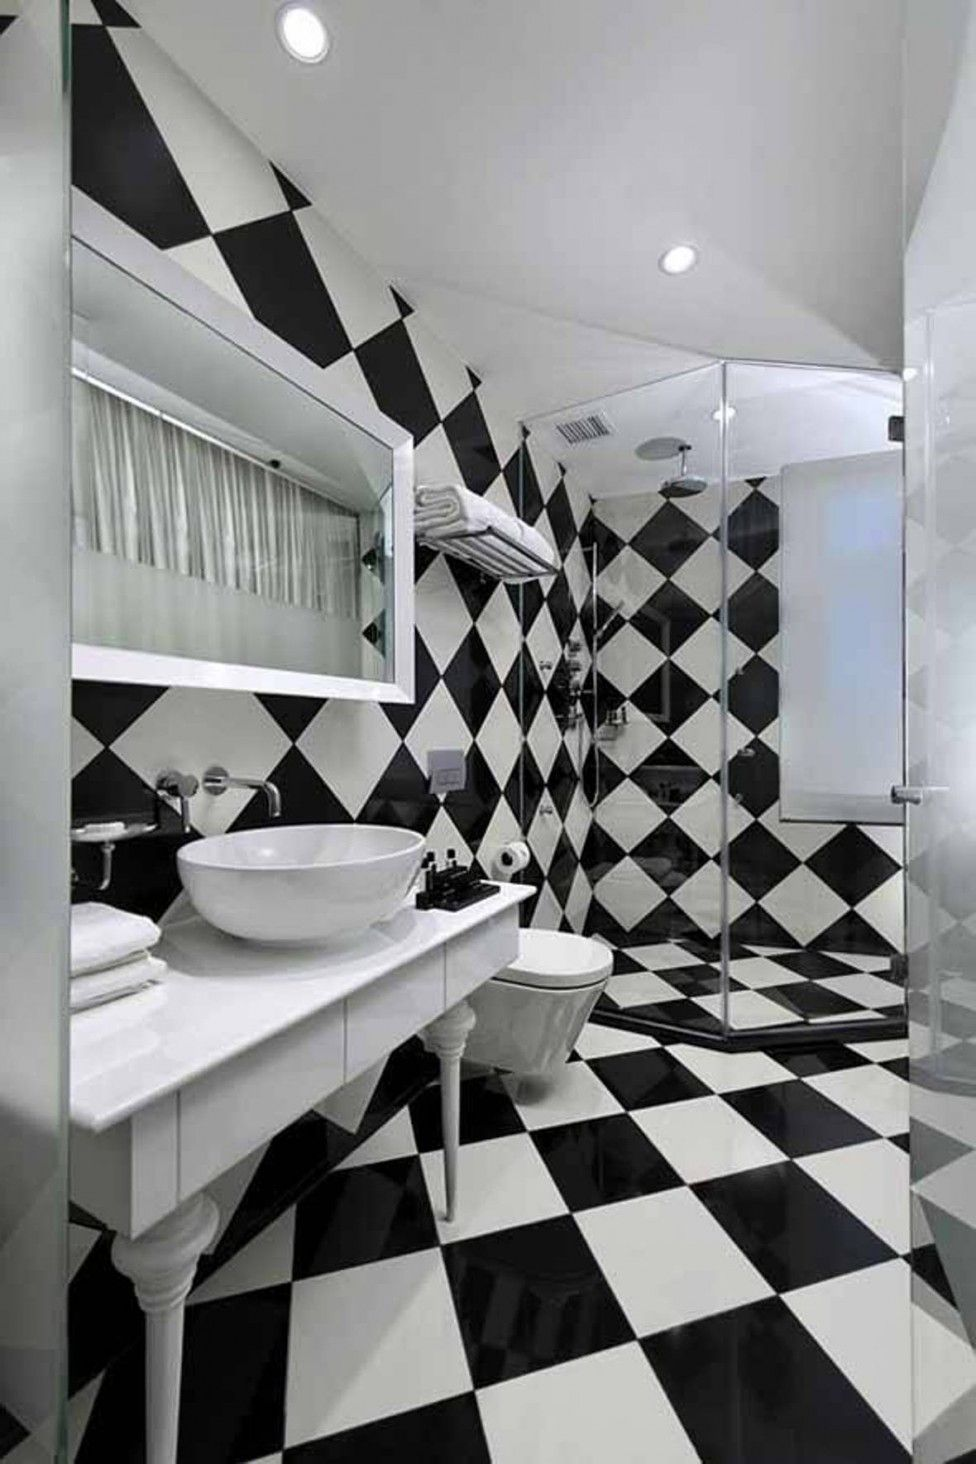 Bathroom decorating ideas black and white - Appealing Black And White Bathrooms Chess Black And White Bathroom Decorating Black And White Black And